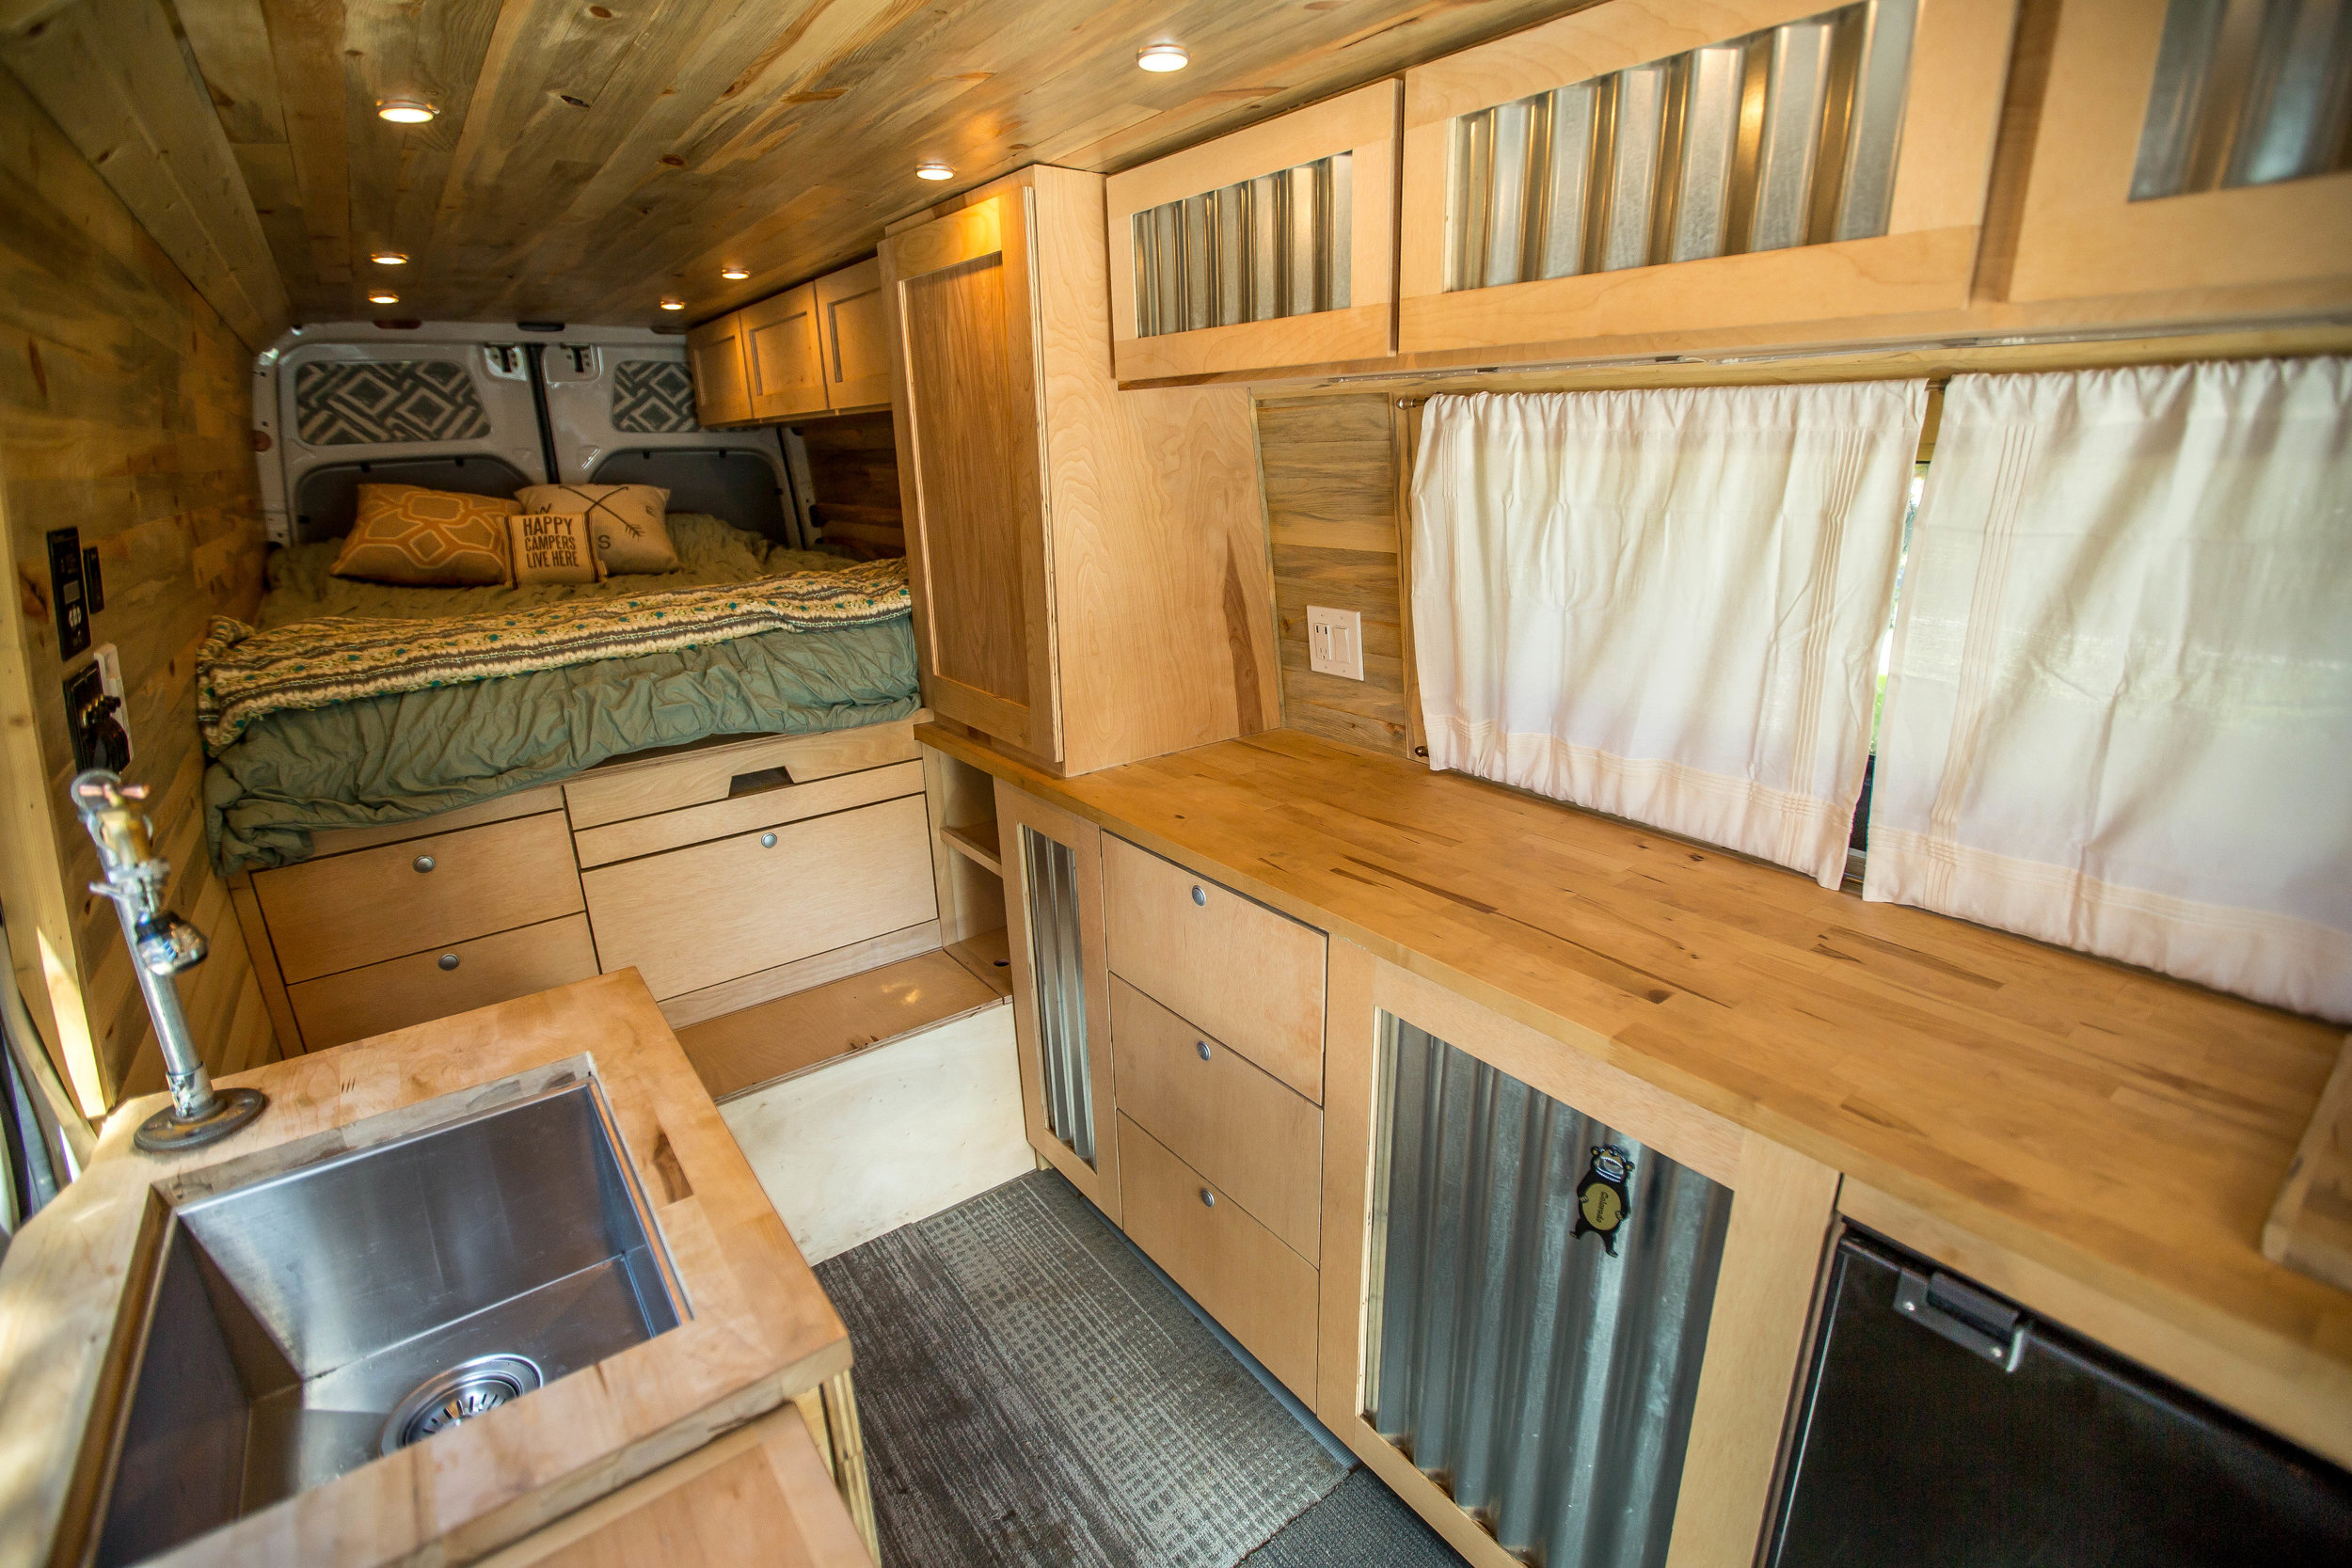 Amenities include beetle kill lined walls, fresh/grey water storage with electric pump, 3.0 cu.ft. refrigerator, LED lighting, and more.